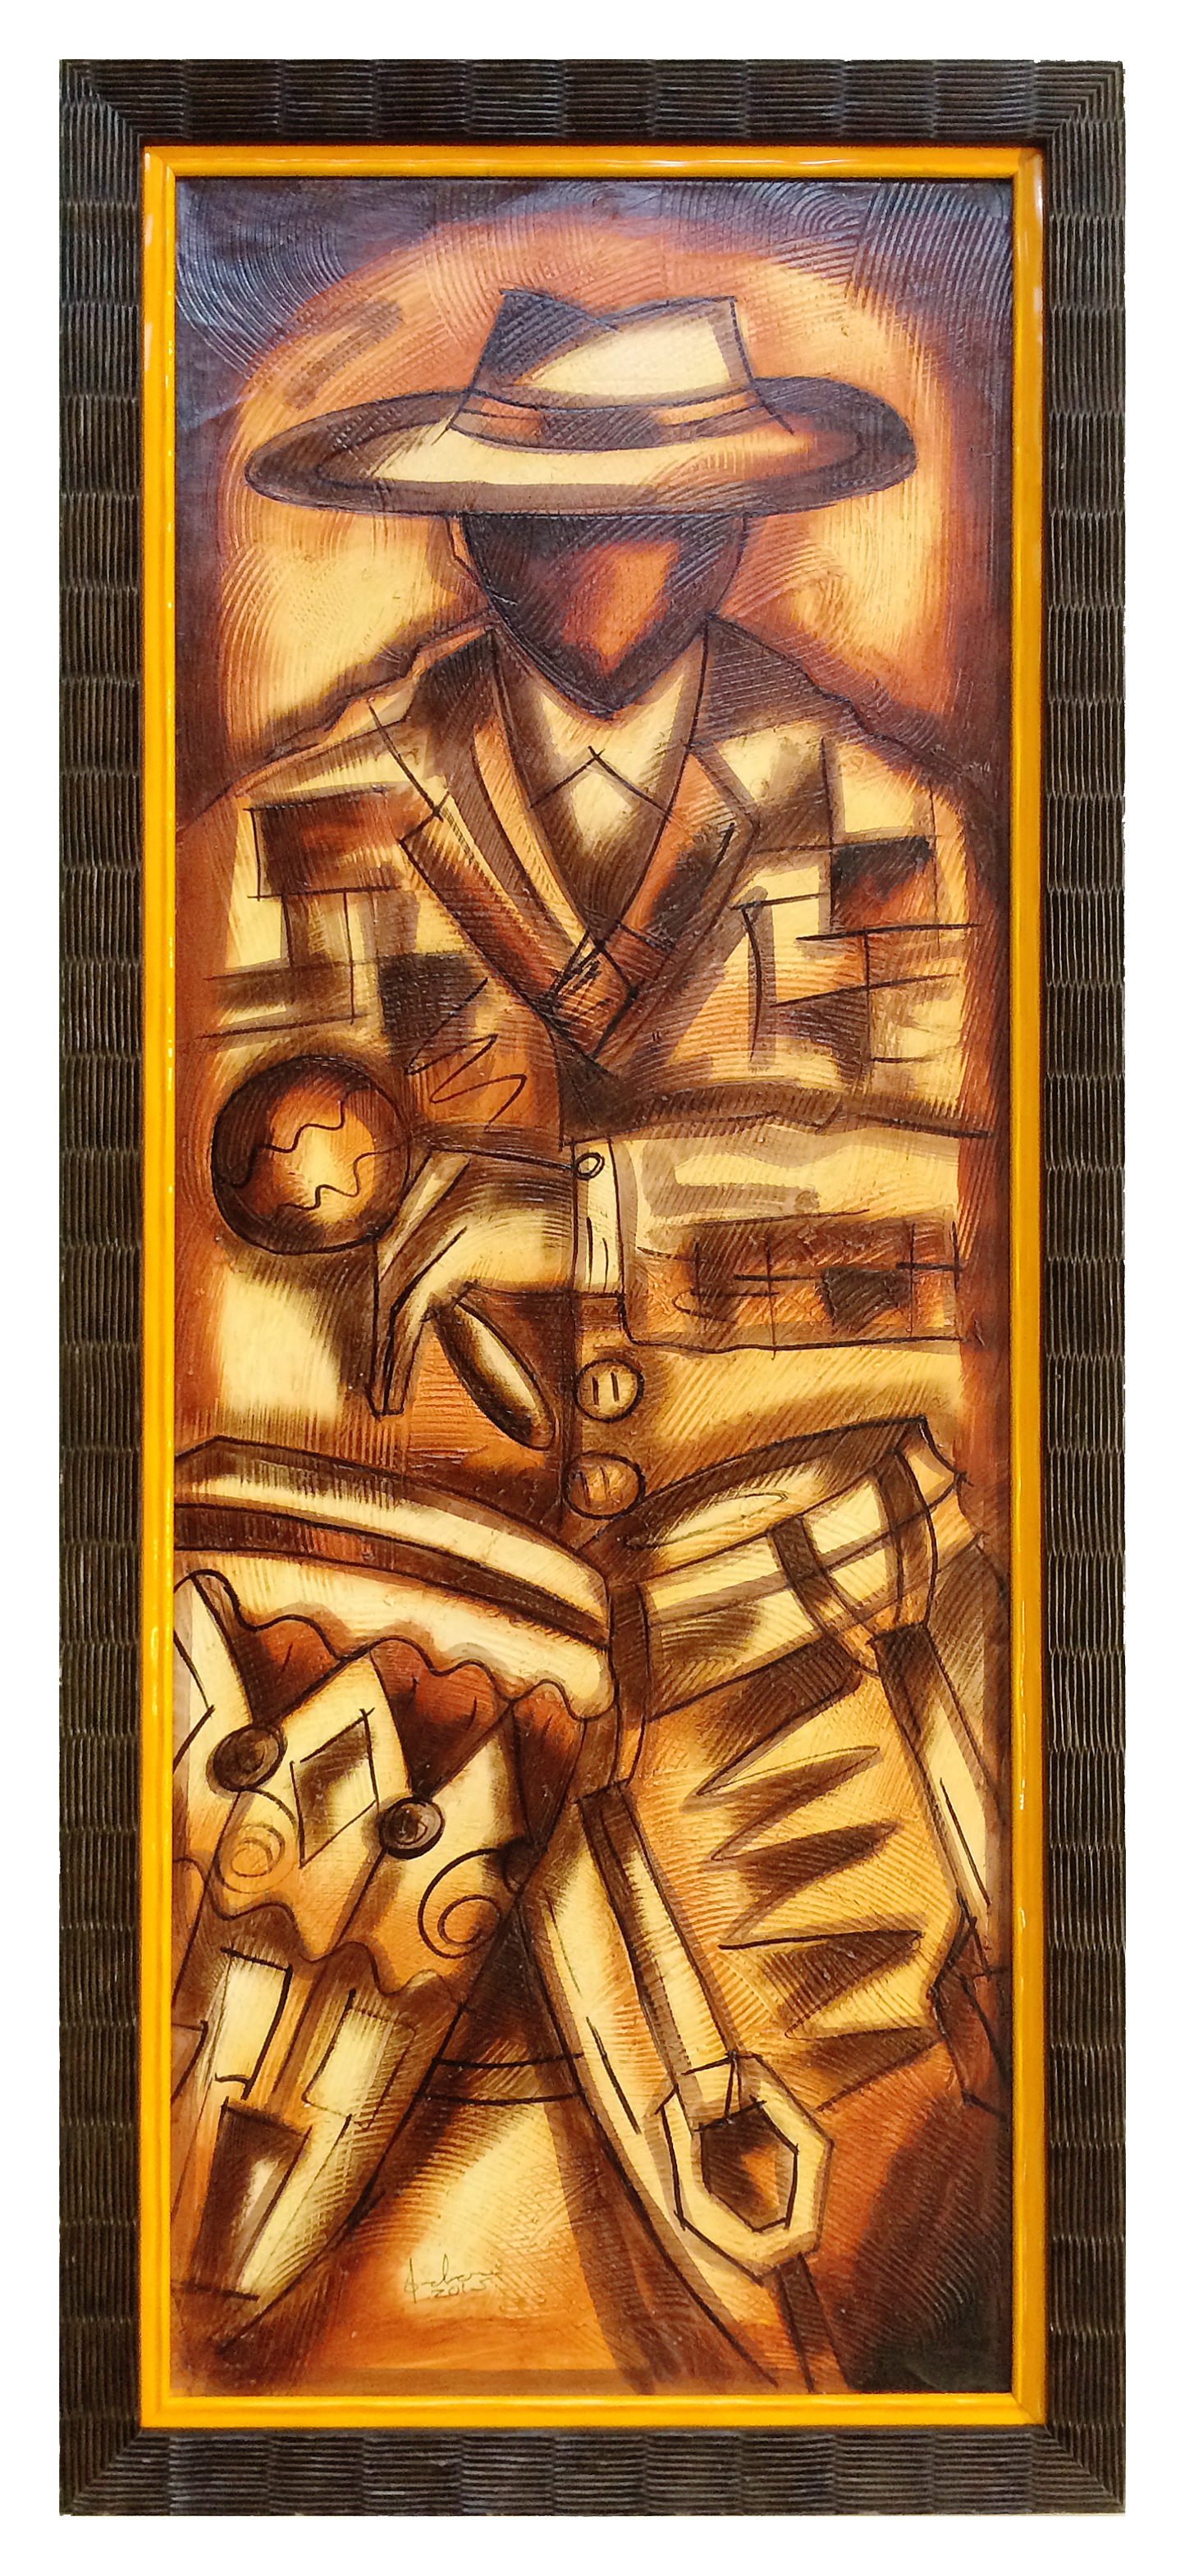 This oil painting of a Cuban jazz musician is framed in a stacked frame (two mouldings put together).  The texture of the outer frame mimics the surface textures of the artwork, while the glossy yellow inner frame coordinates with the golds and yellows of the piece.